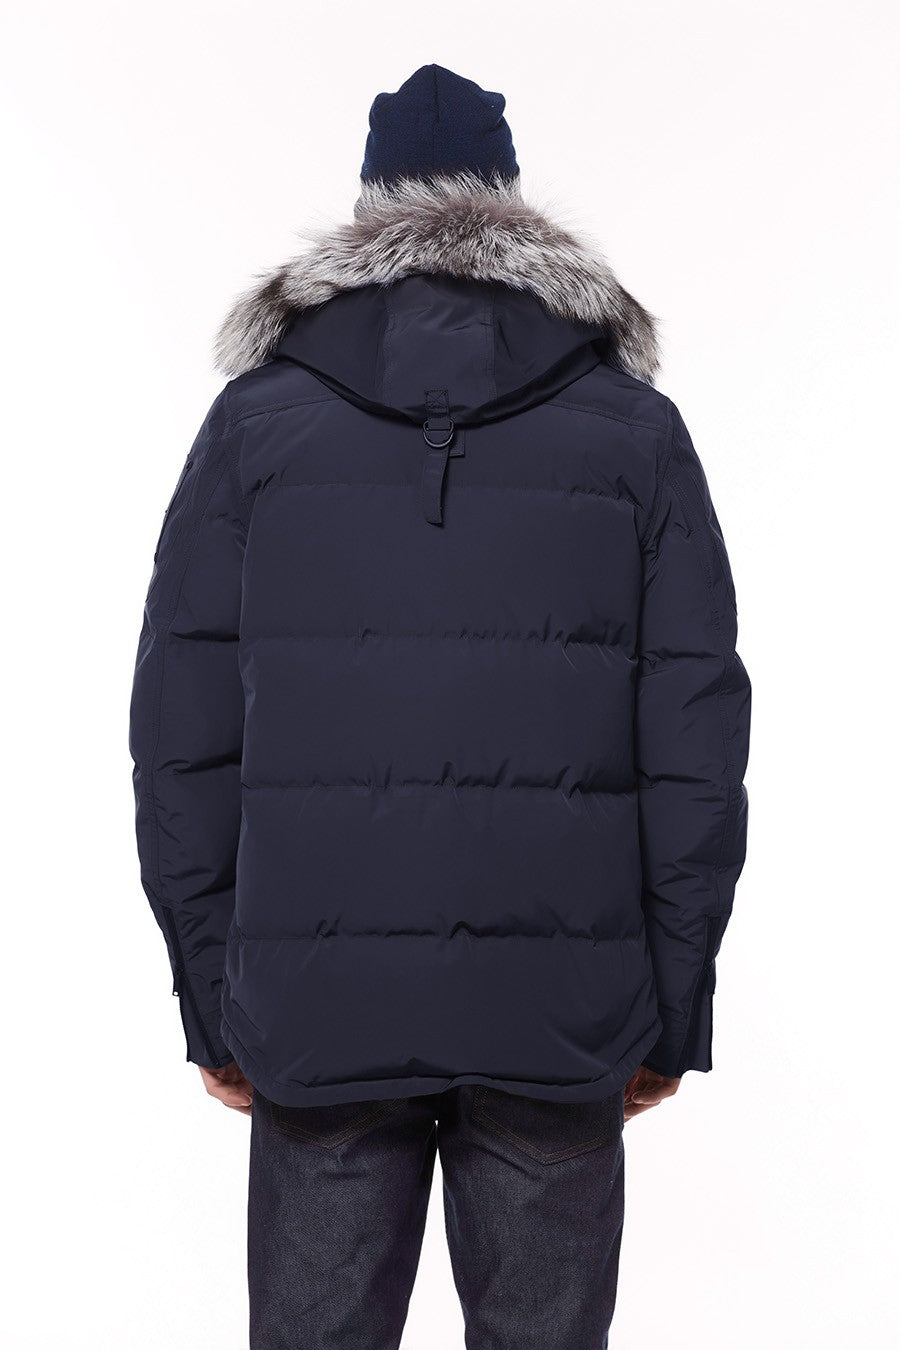 Moose Knuckles Port Dufferin Jacket in True Navy - BOUTIQUE TAG